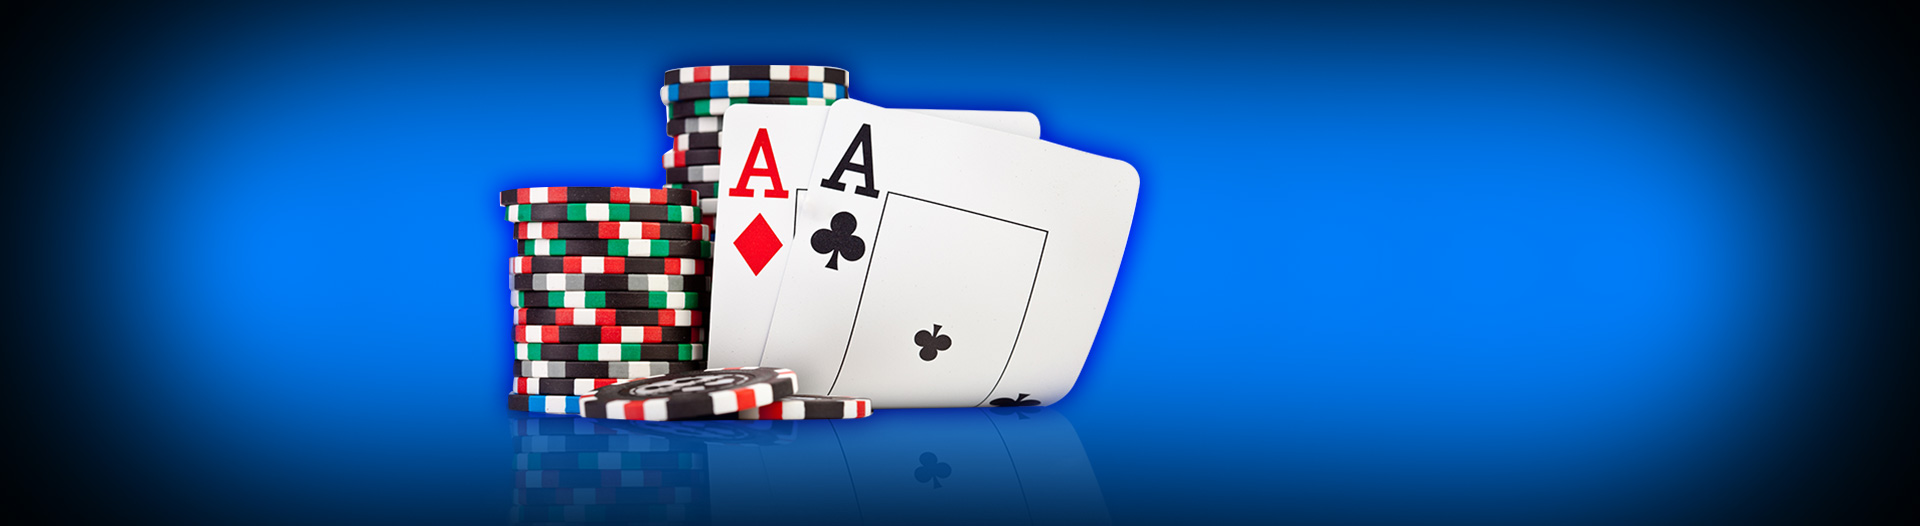 download poker 888